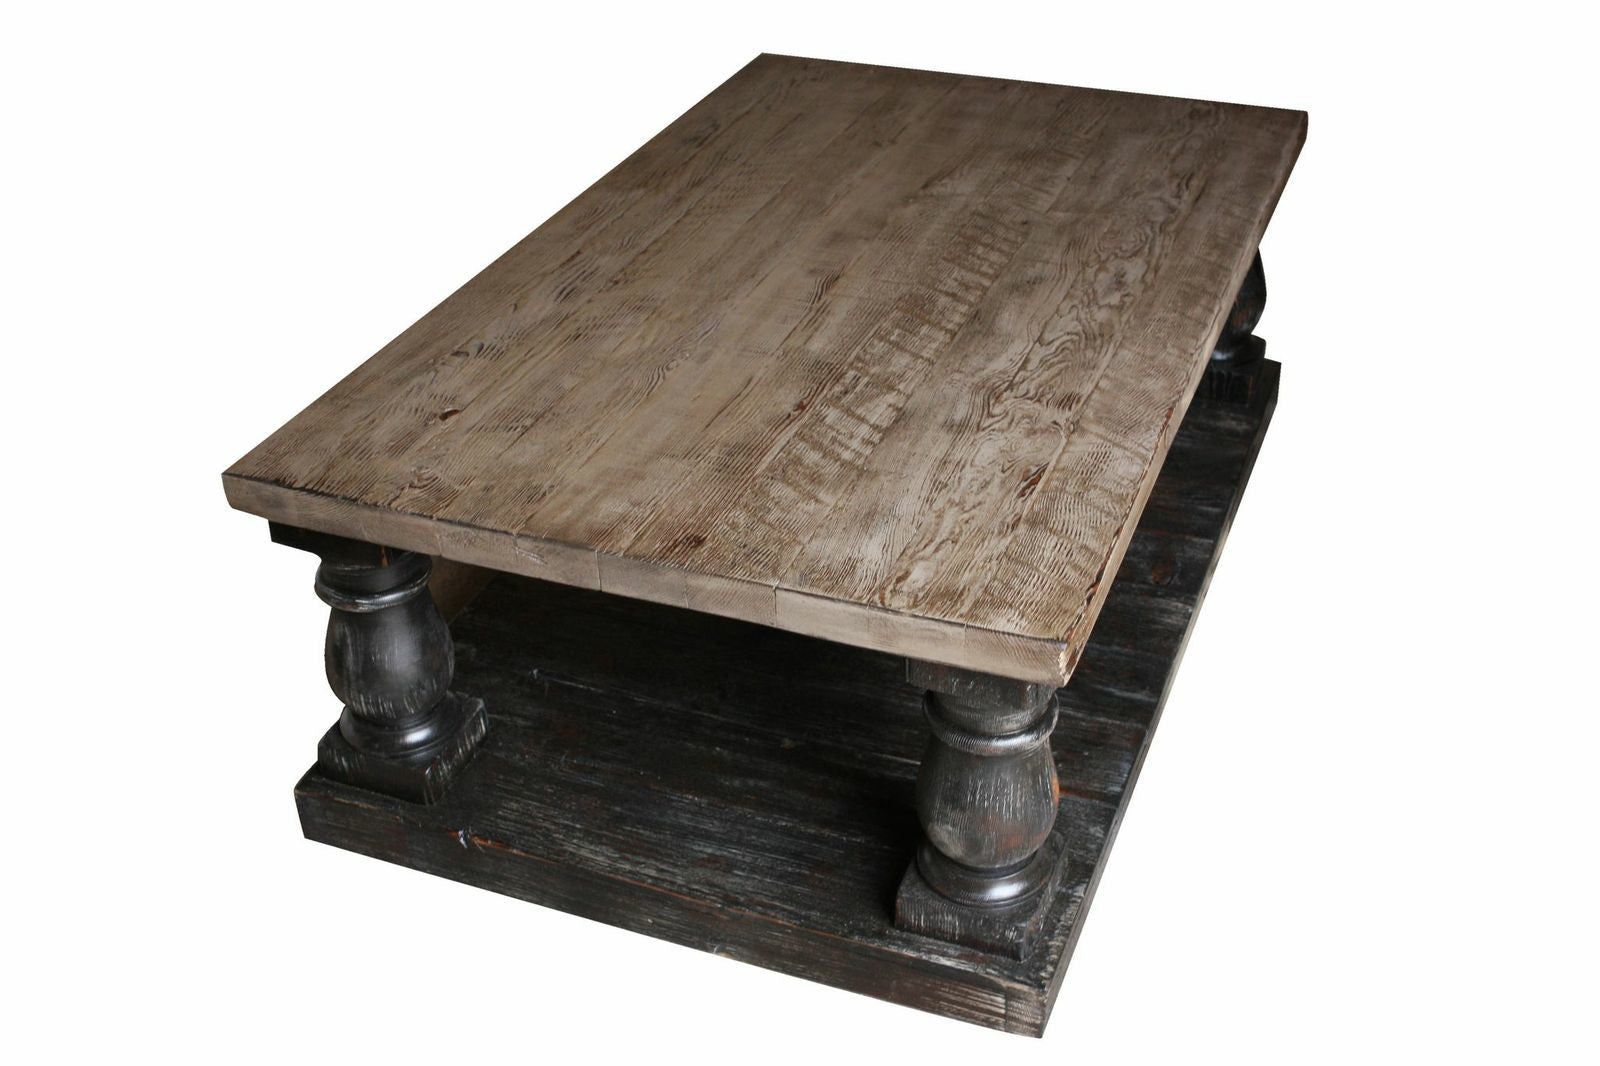 Postobello Large Turned Leg Coffee Table Built In Reclaimed Wood Coffee Tables Handcrafted From